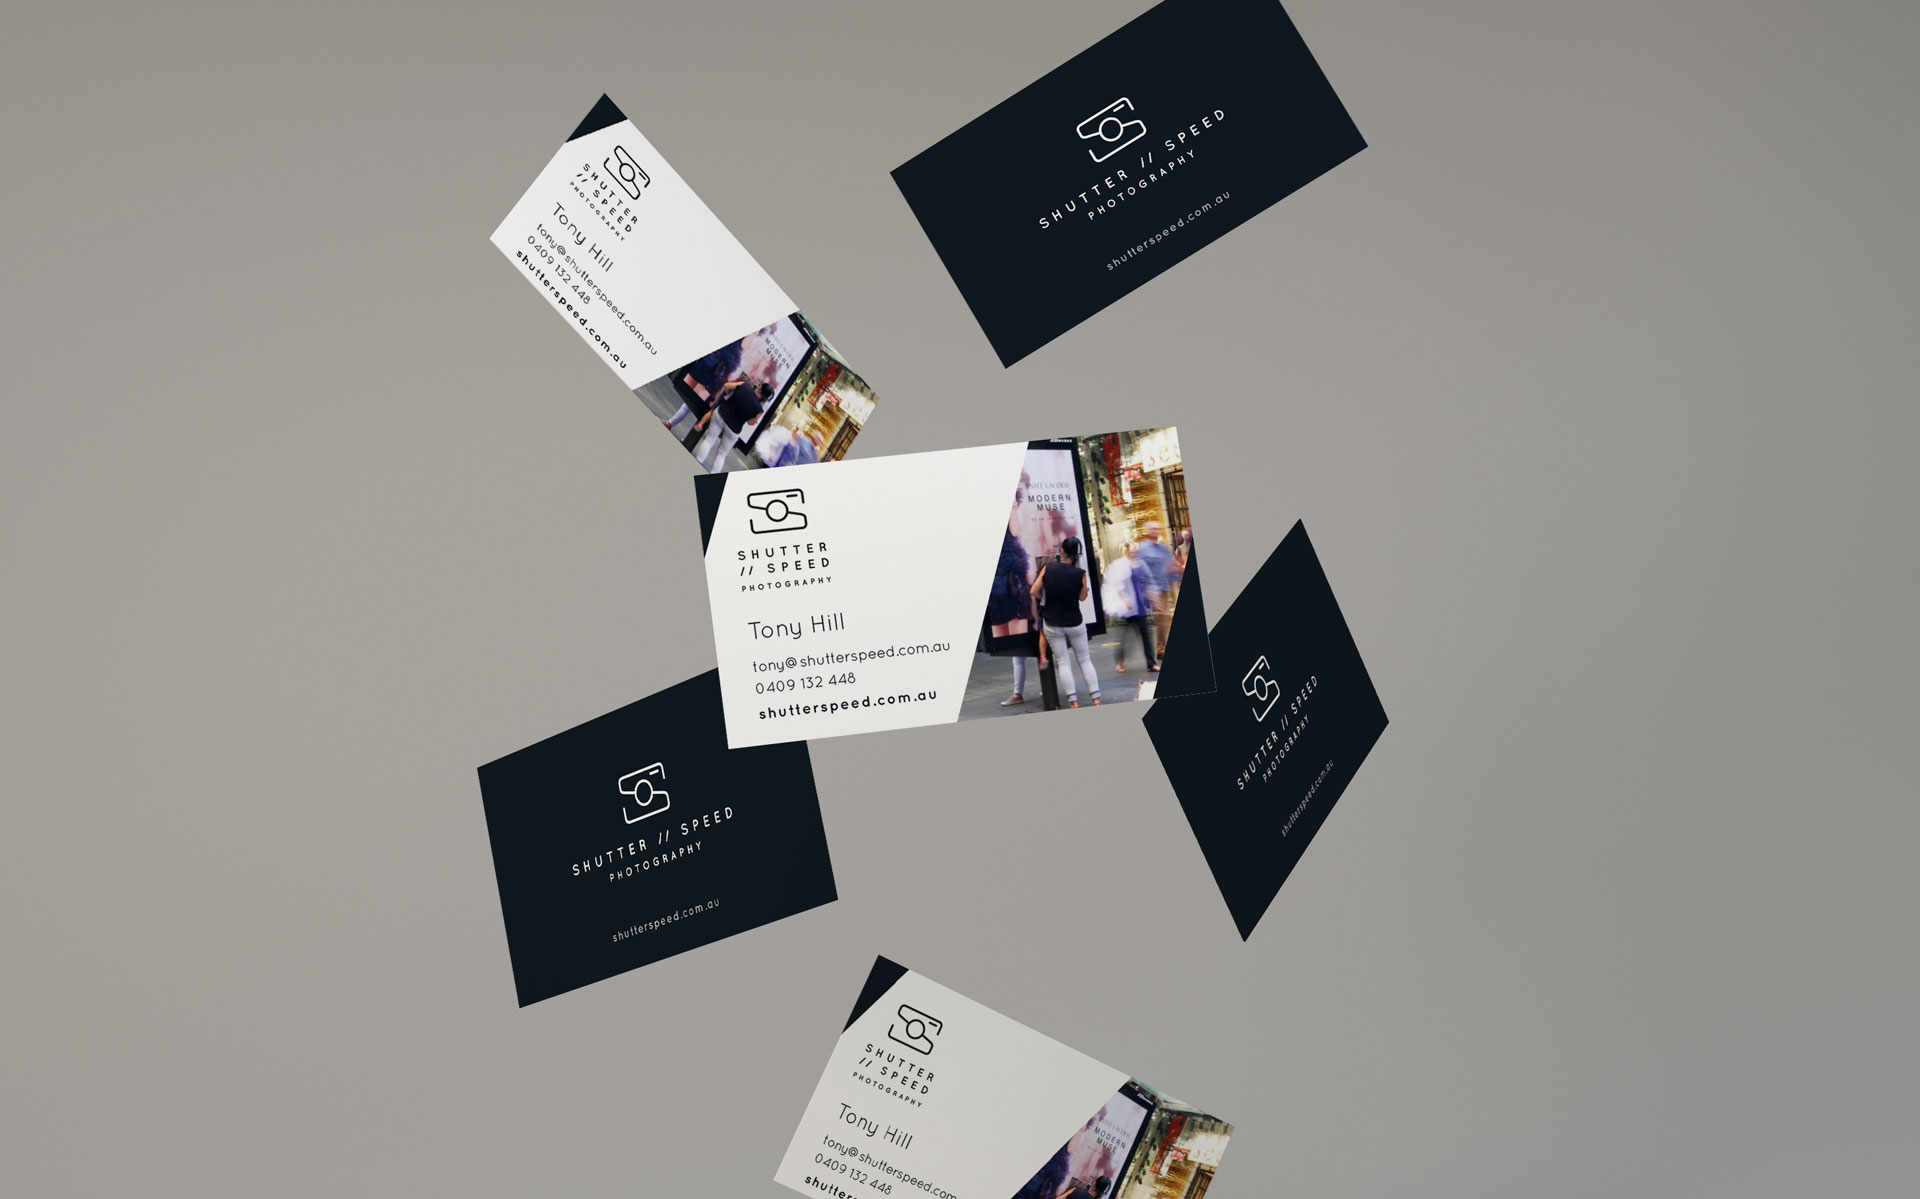 Shutterspeed logo, branding, marketing & online design & build by Amy at Yellow Sunday